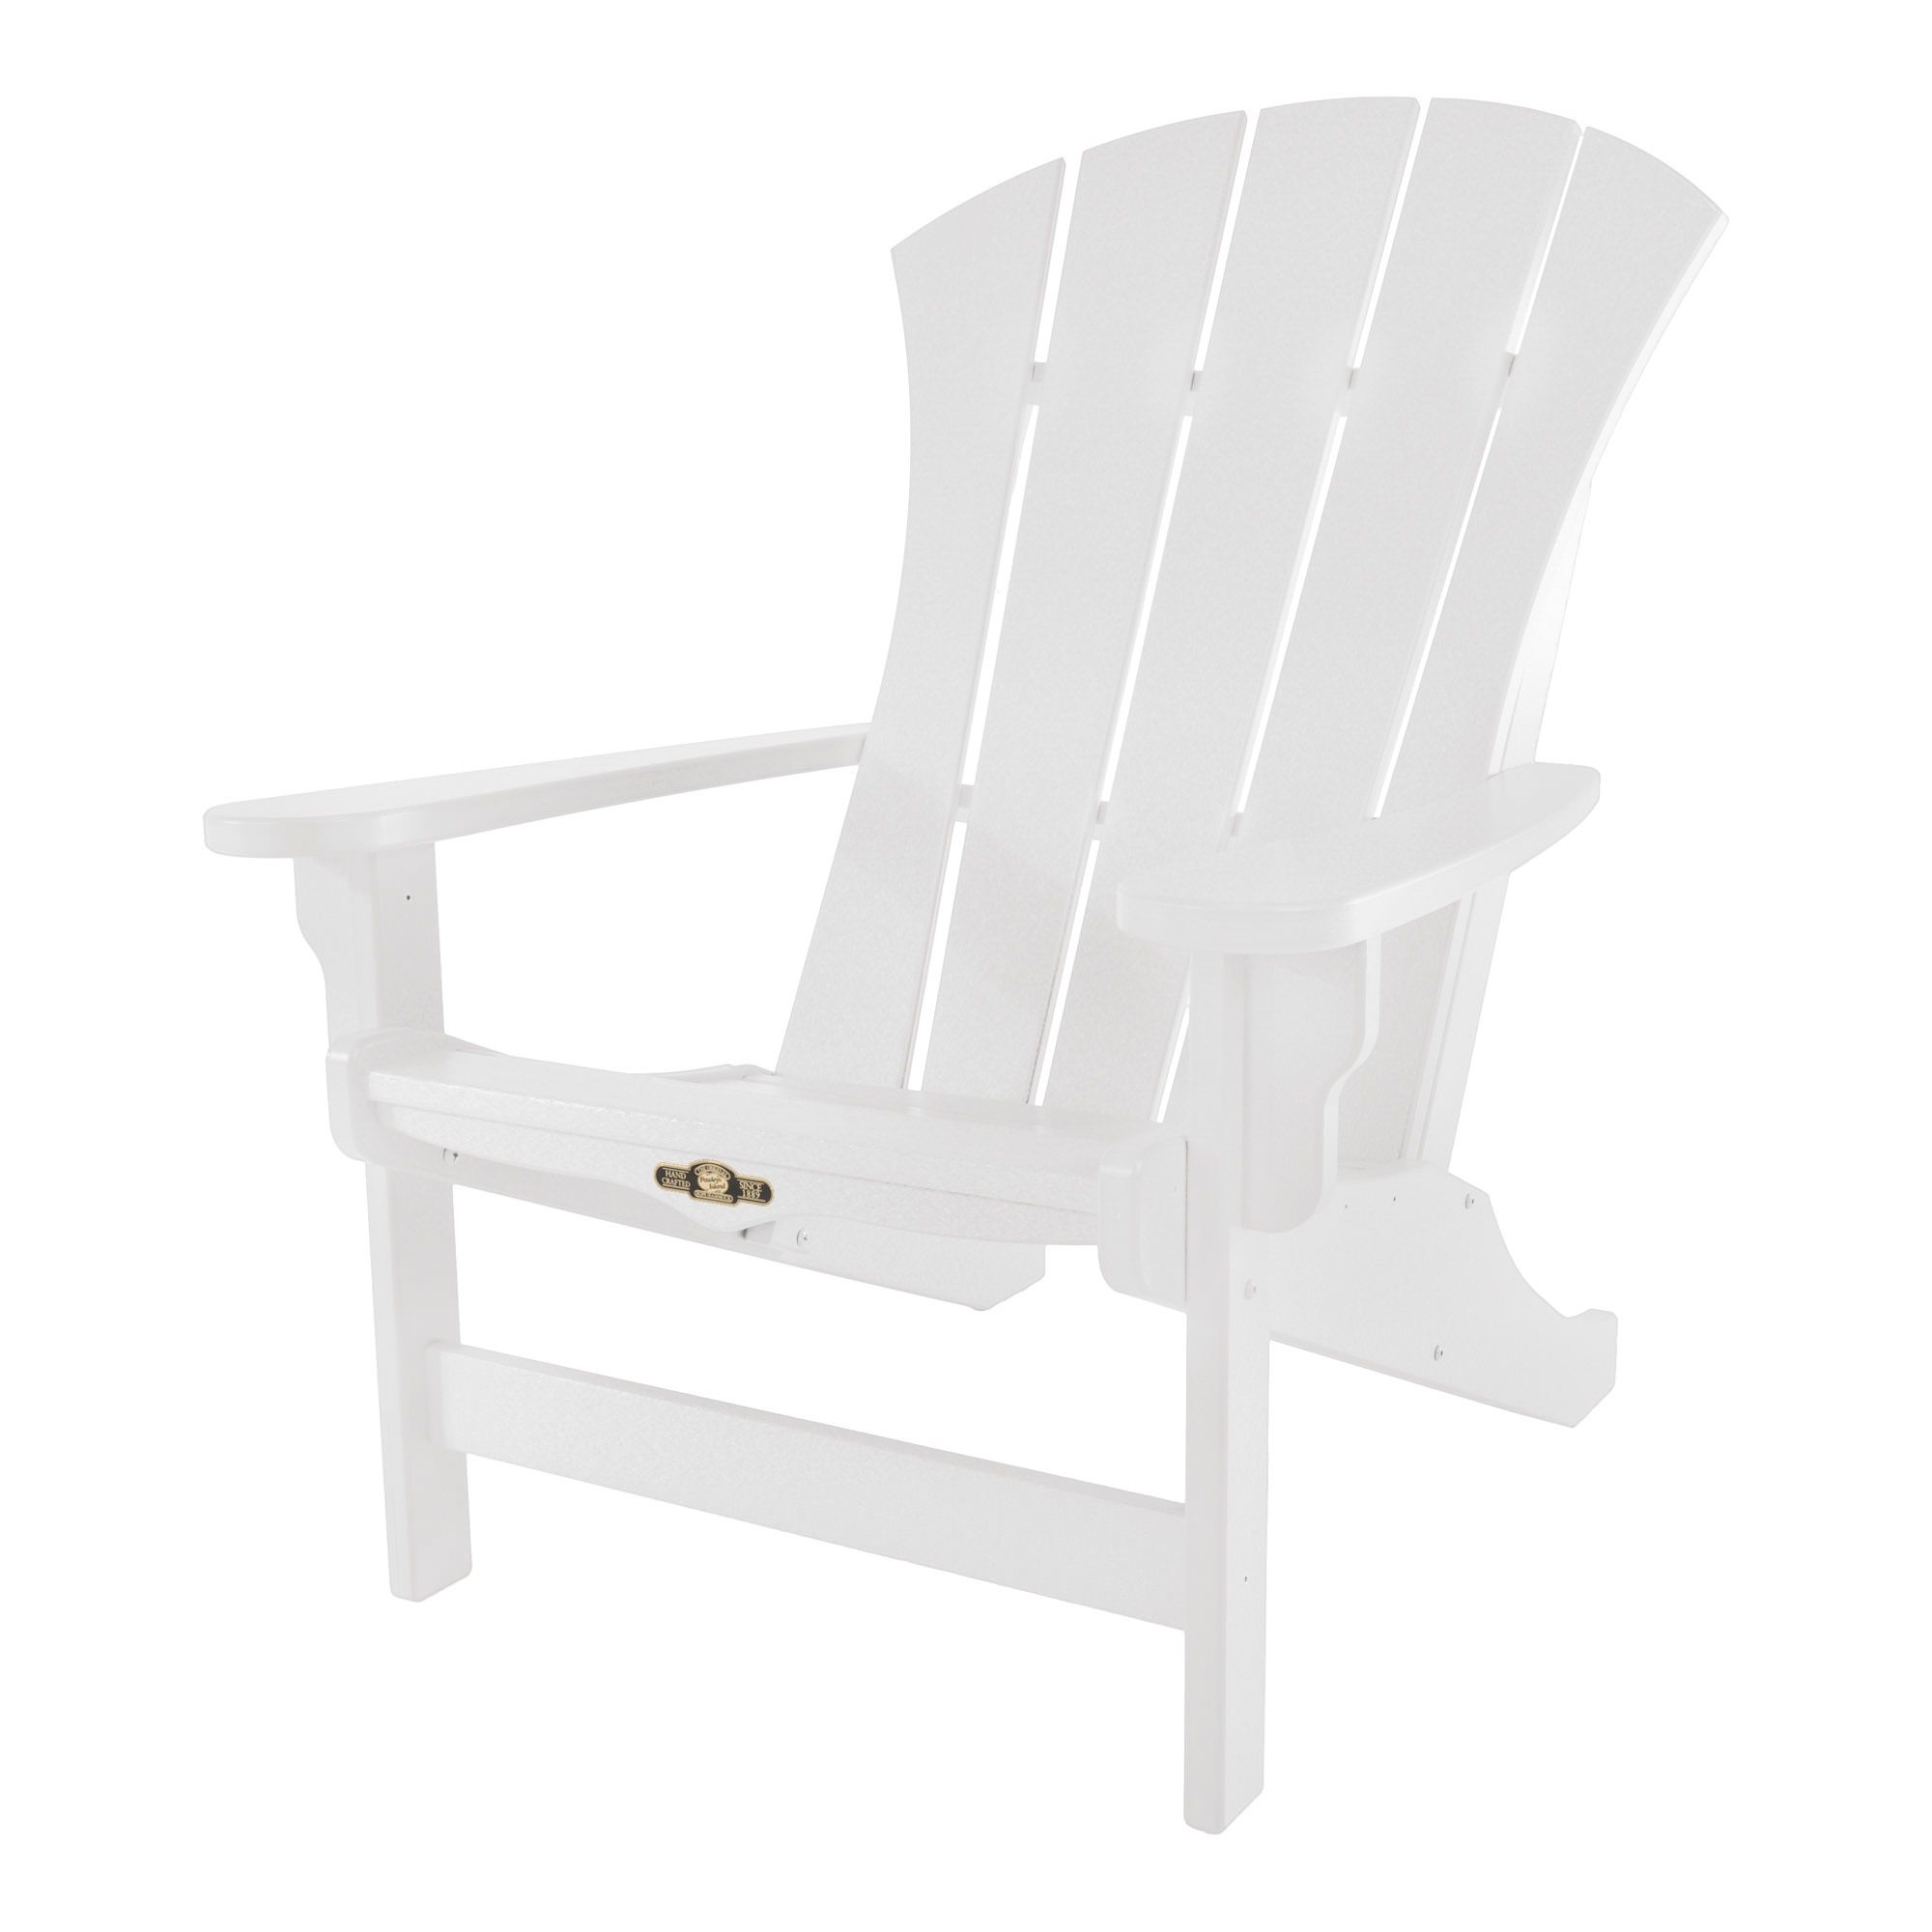 Sunrise White Durawood Adirondack Chair Pawleys Island